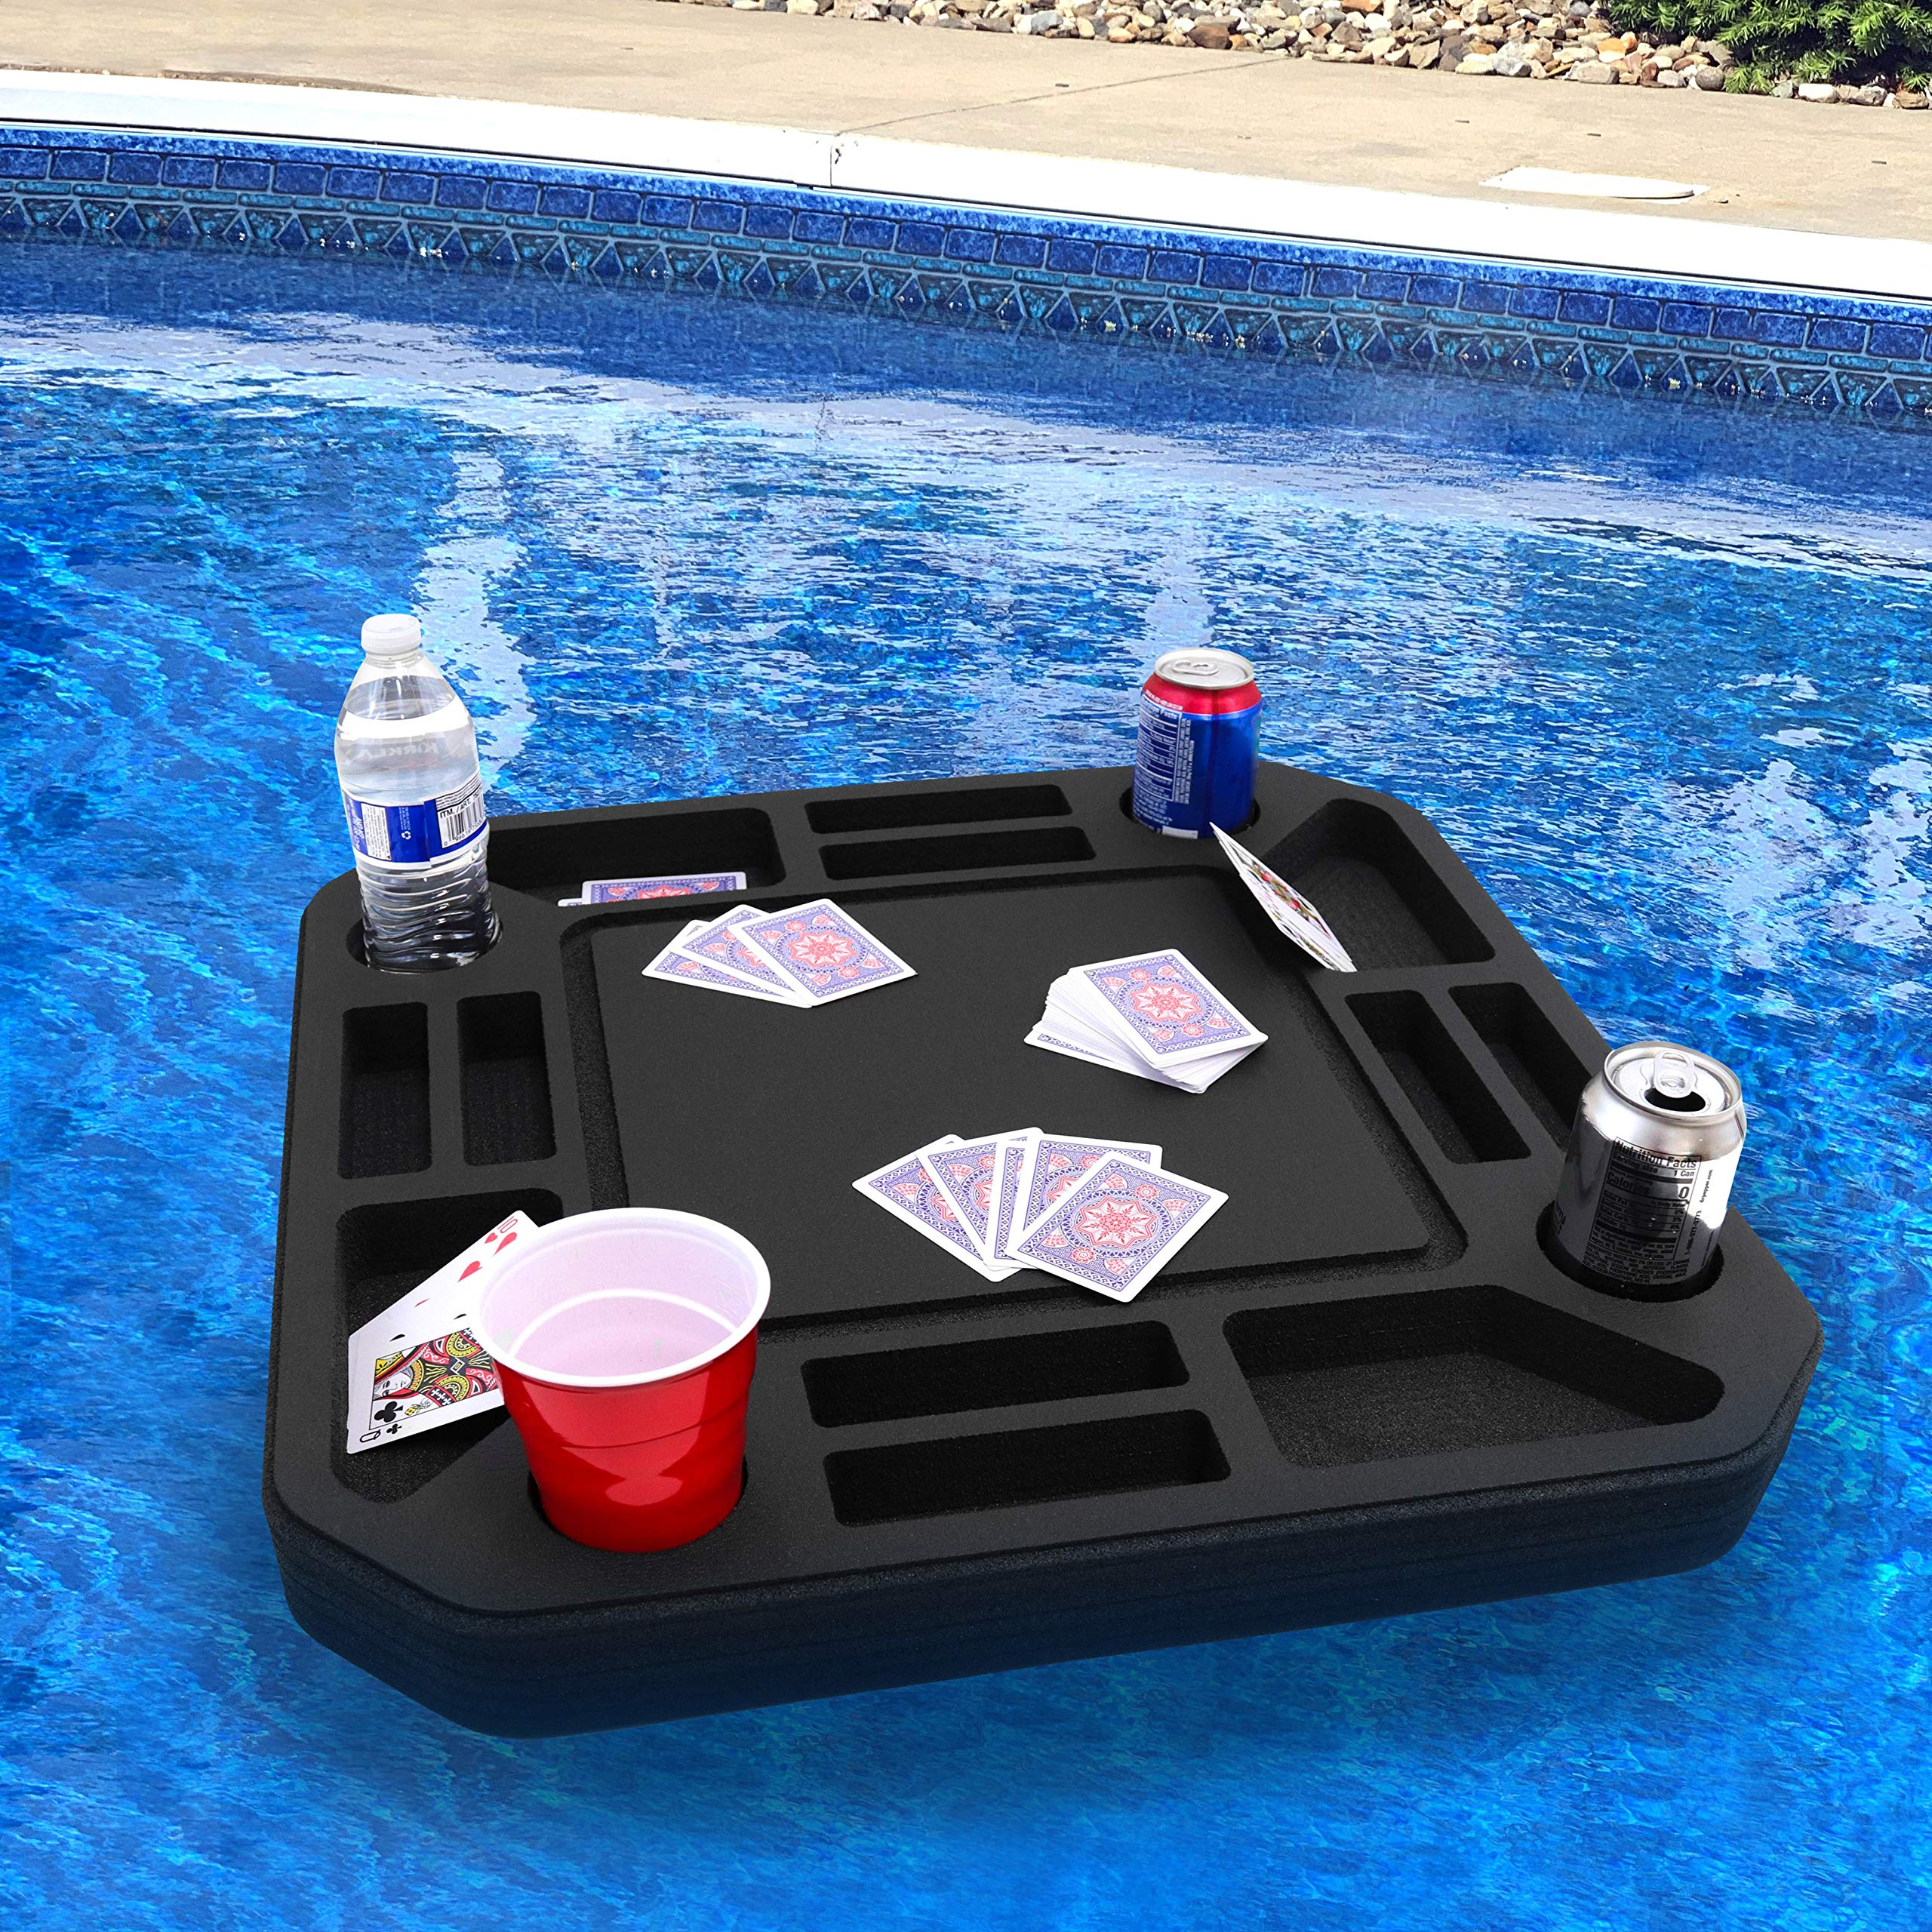 Polar Whale Floating Medium Poker Table Game Tray for Pool or Beach Party Float Lounge Durable Foam 23.5 Inch Chip Slots Drink Holders with Waterproof Playing Cards Deck UV Resistant Made in USA by Polar Whale